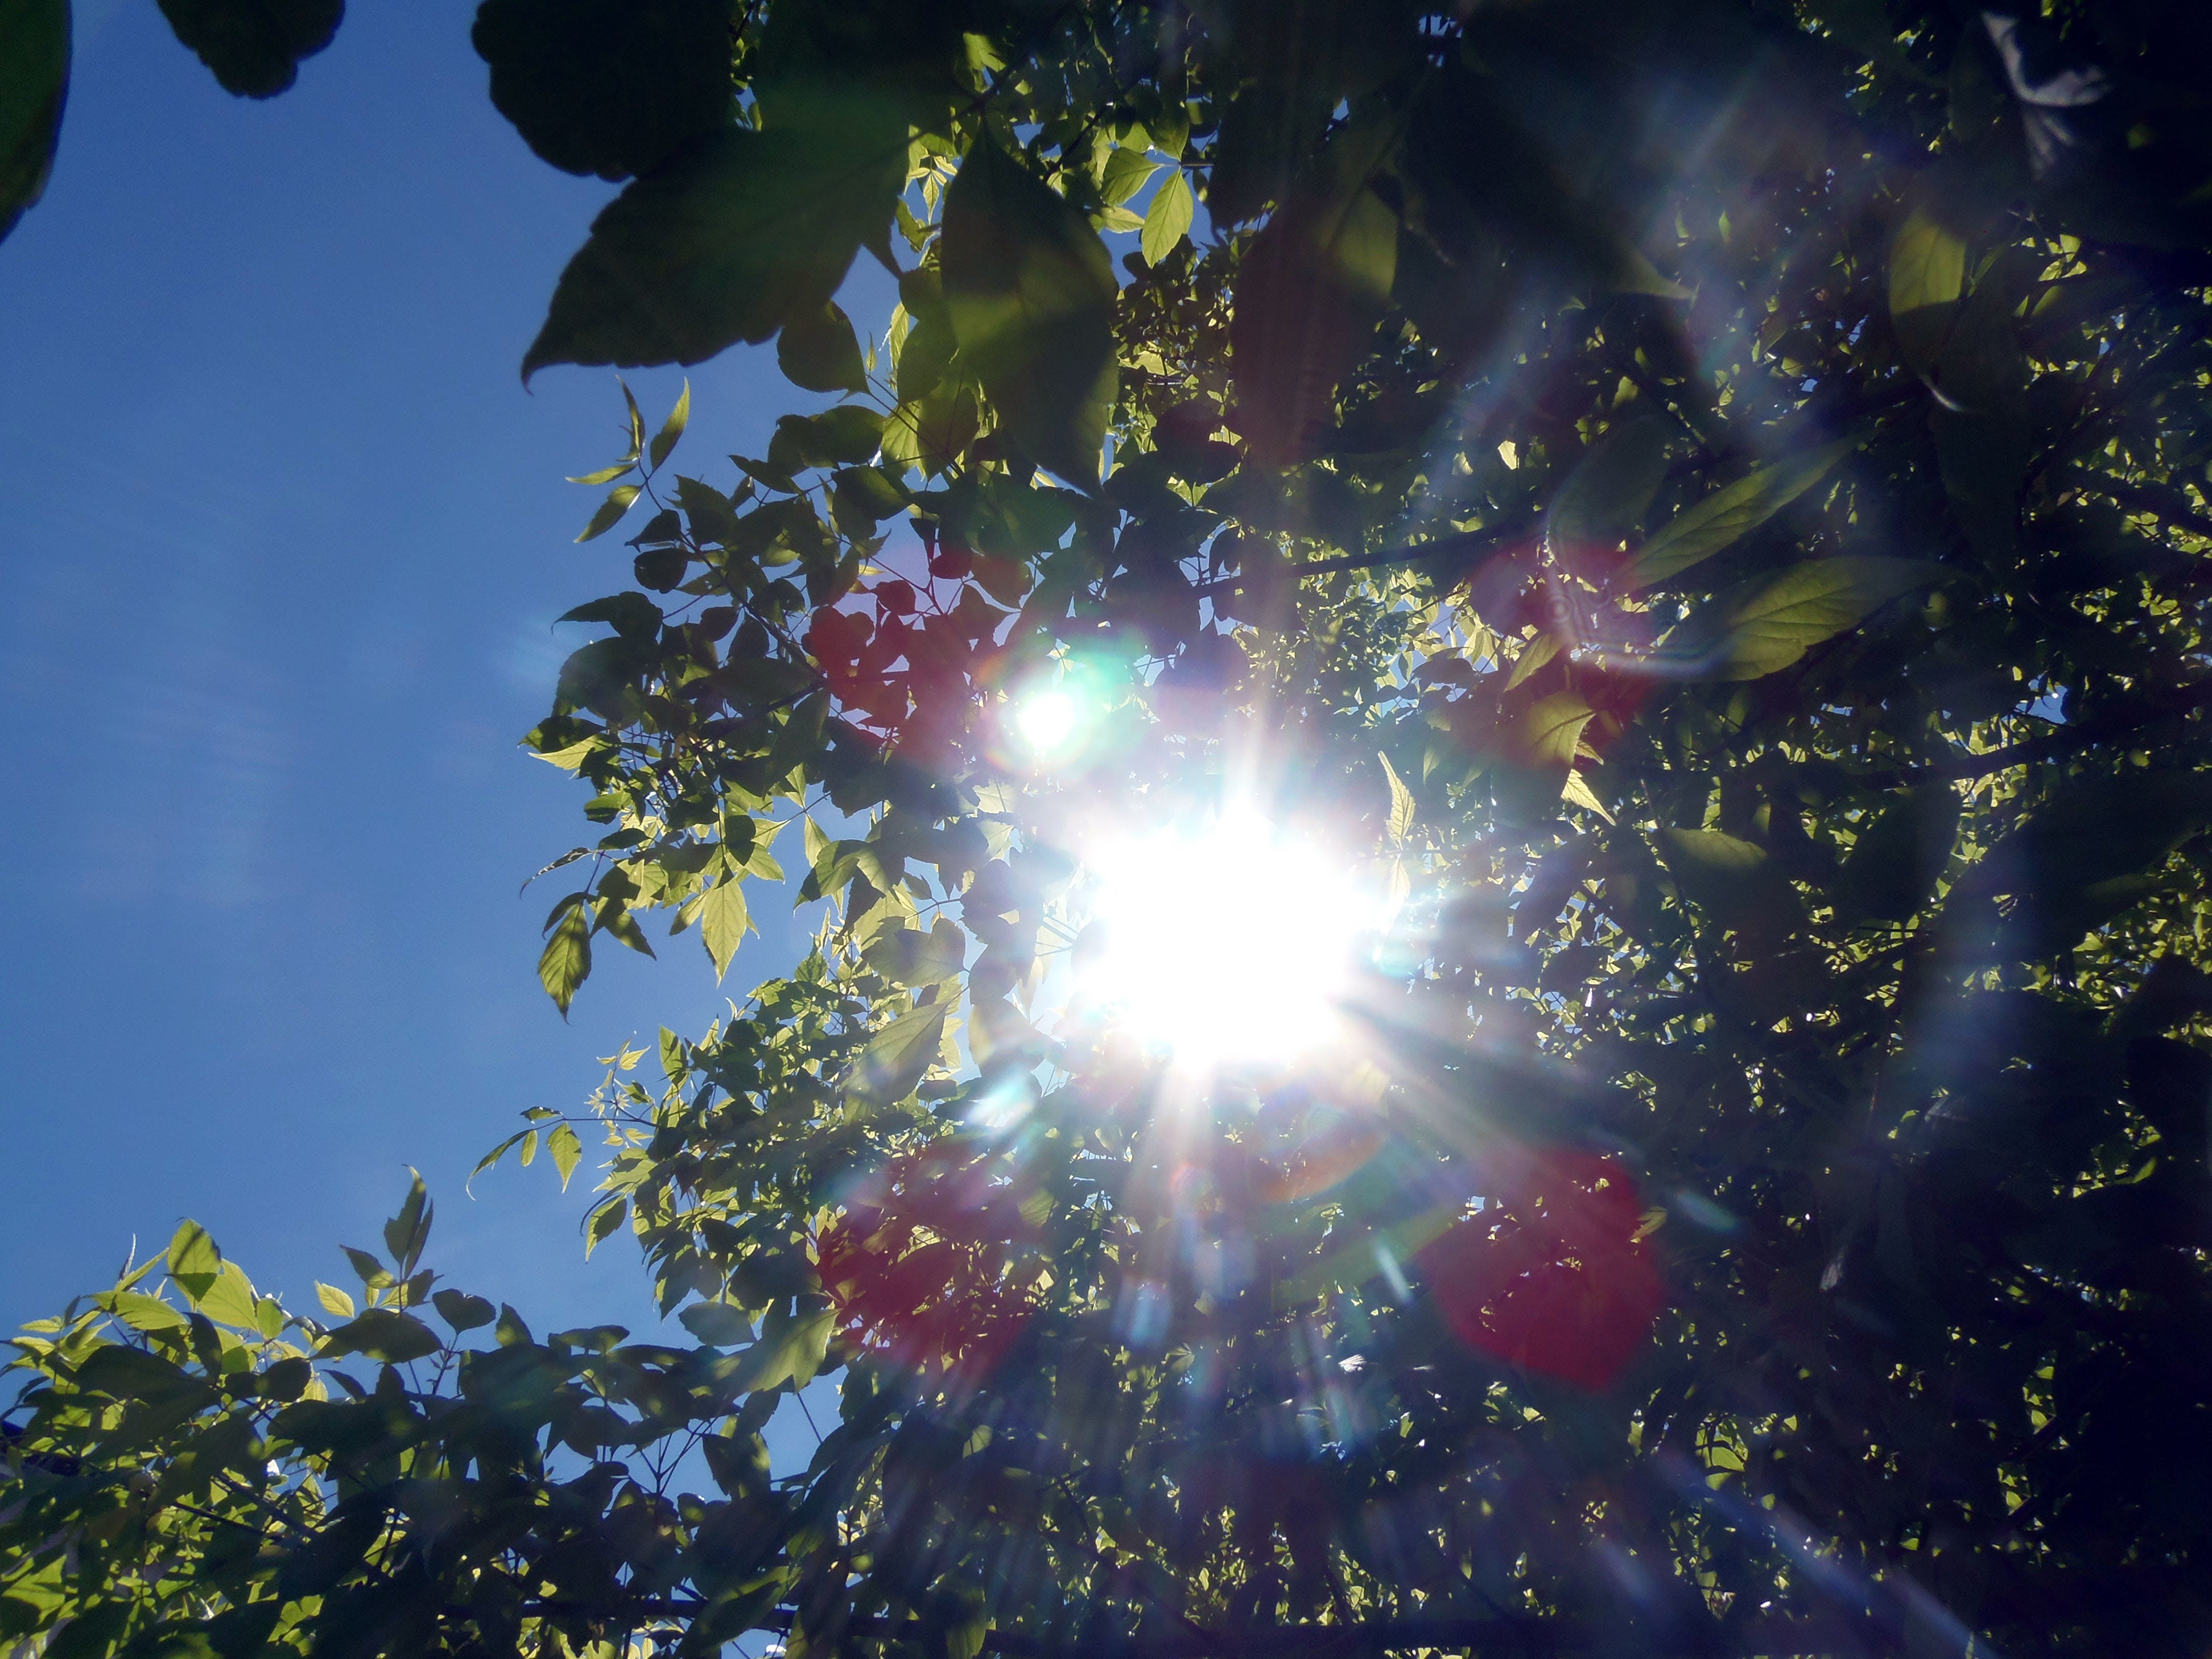 Worm's Eye View of Red and Green Outdoor Plant With Sunlight Painting